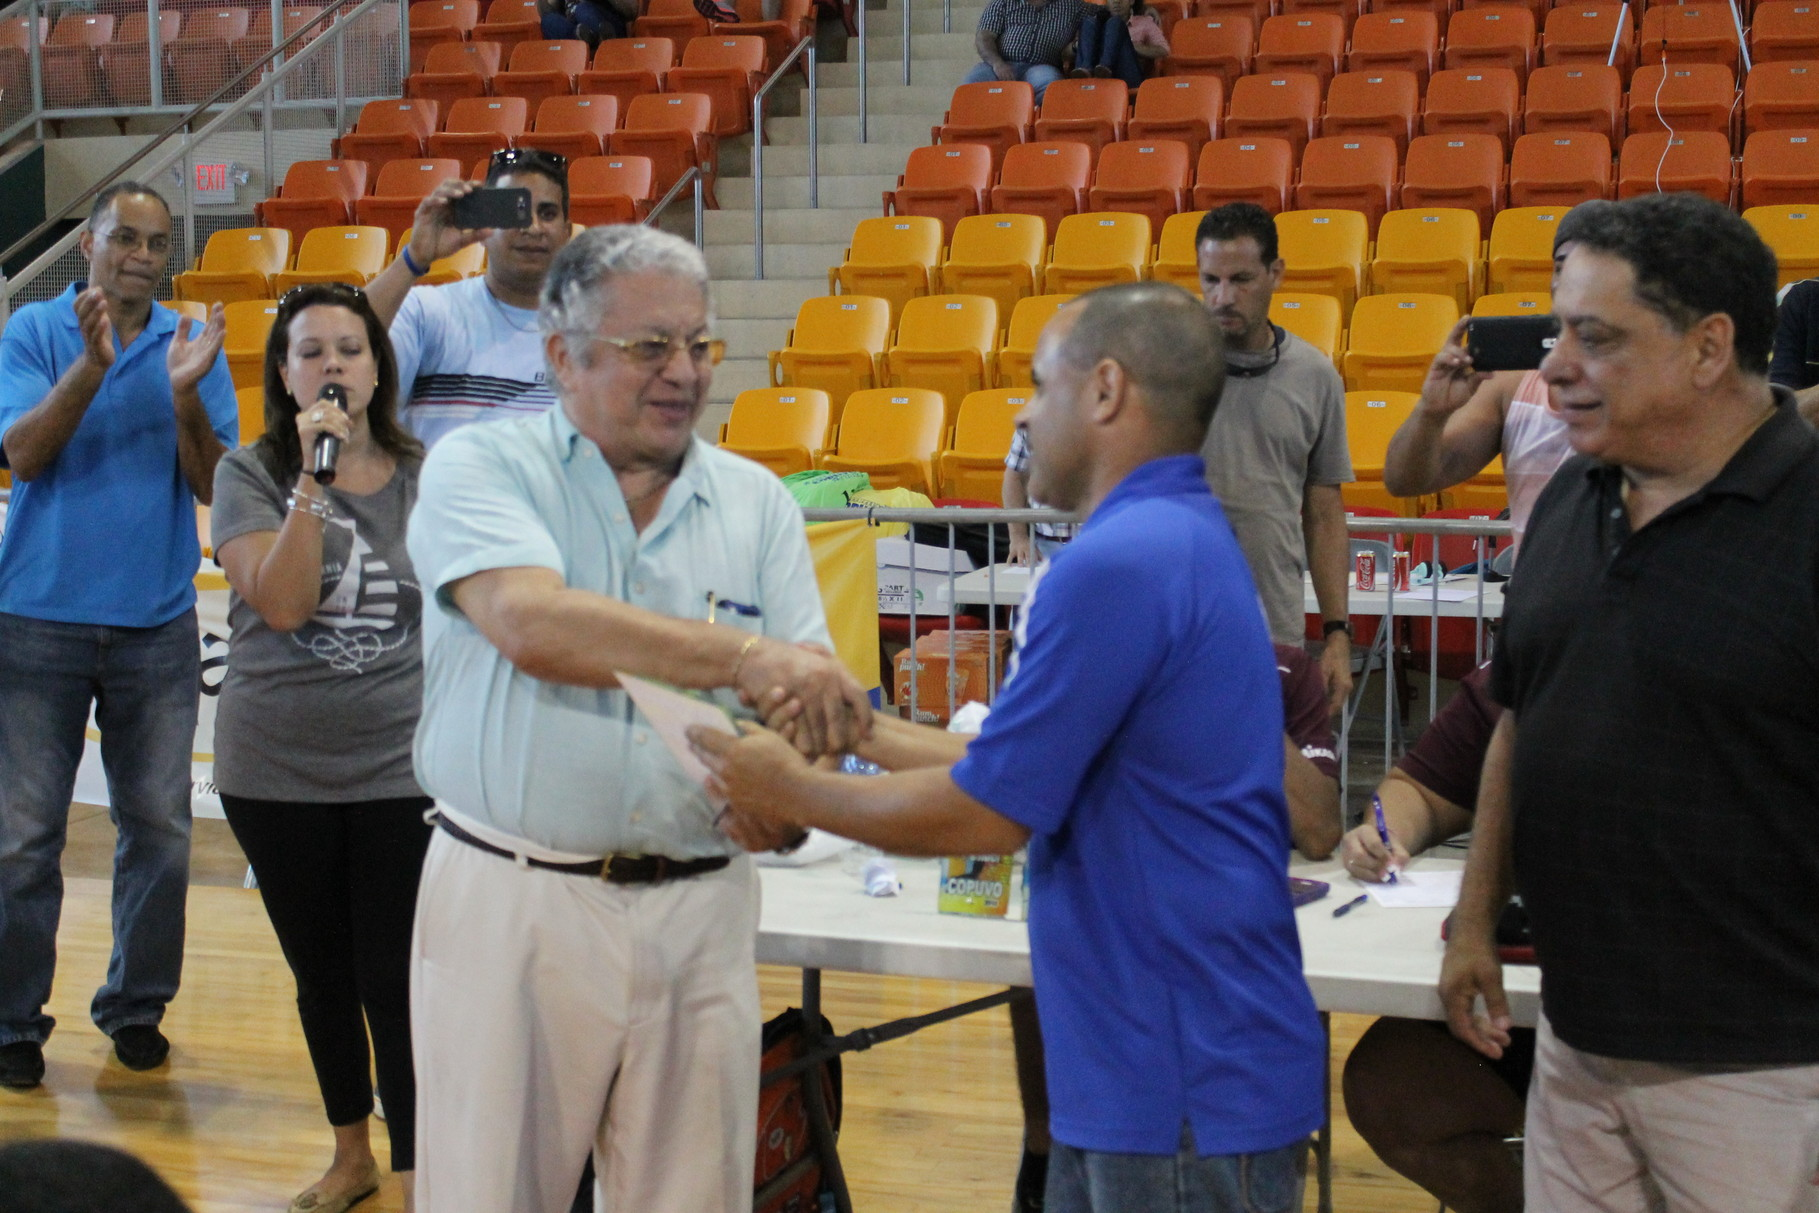 EL COACH DE LAS SILVER GIRLS JOE HERNANDEZ RECIBE LA PLACA DE SUBCAMPEON